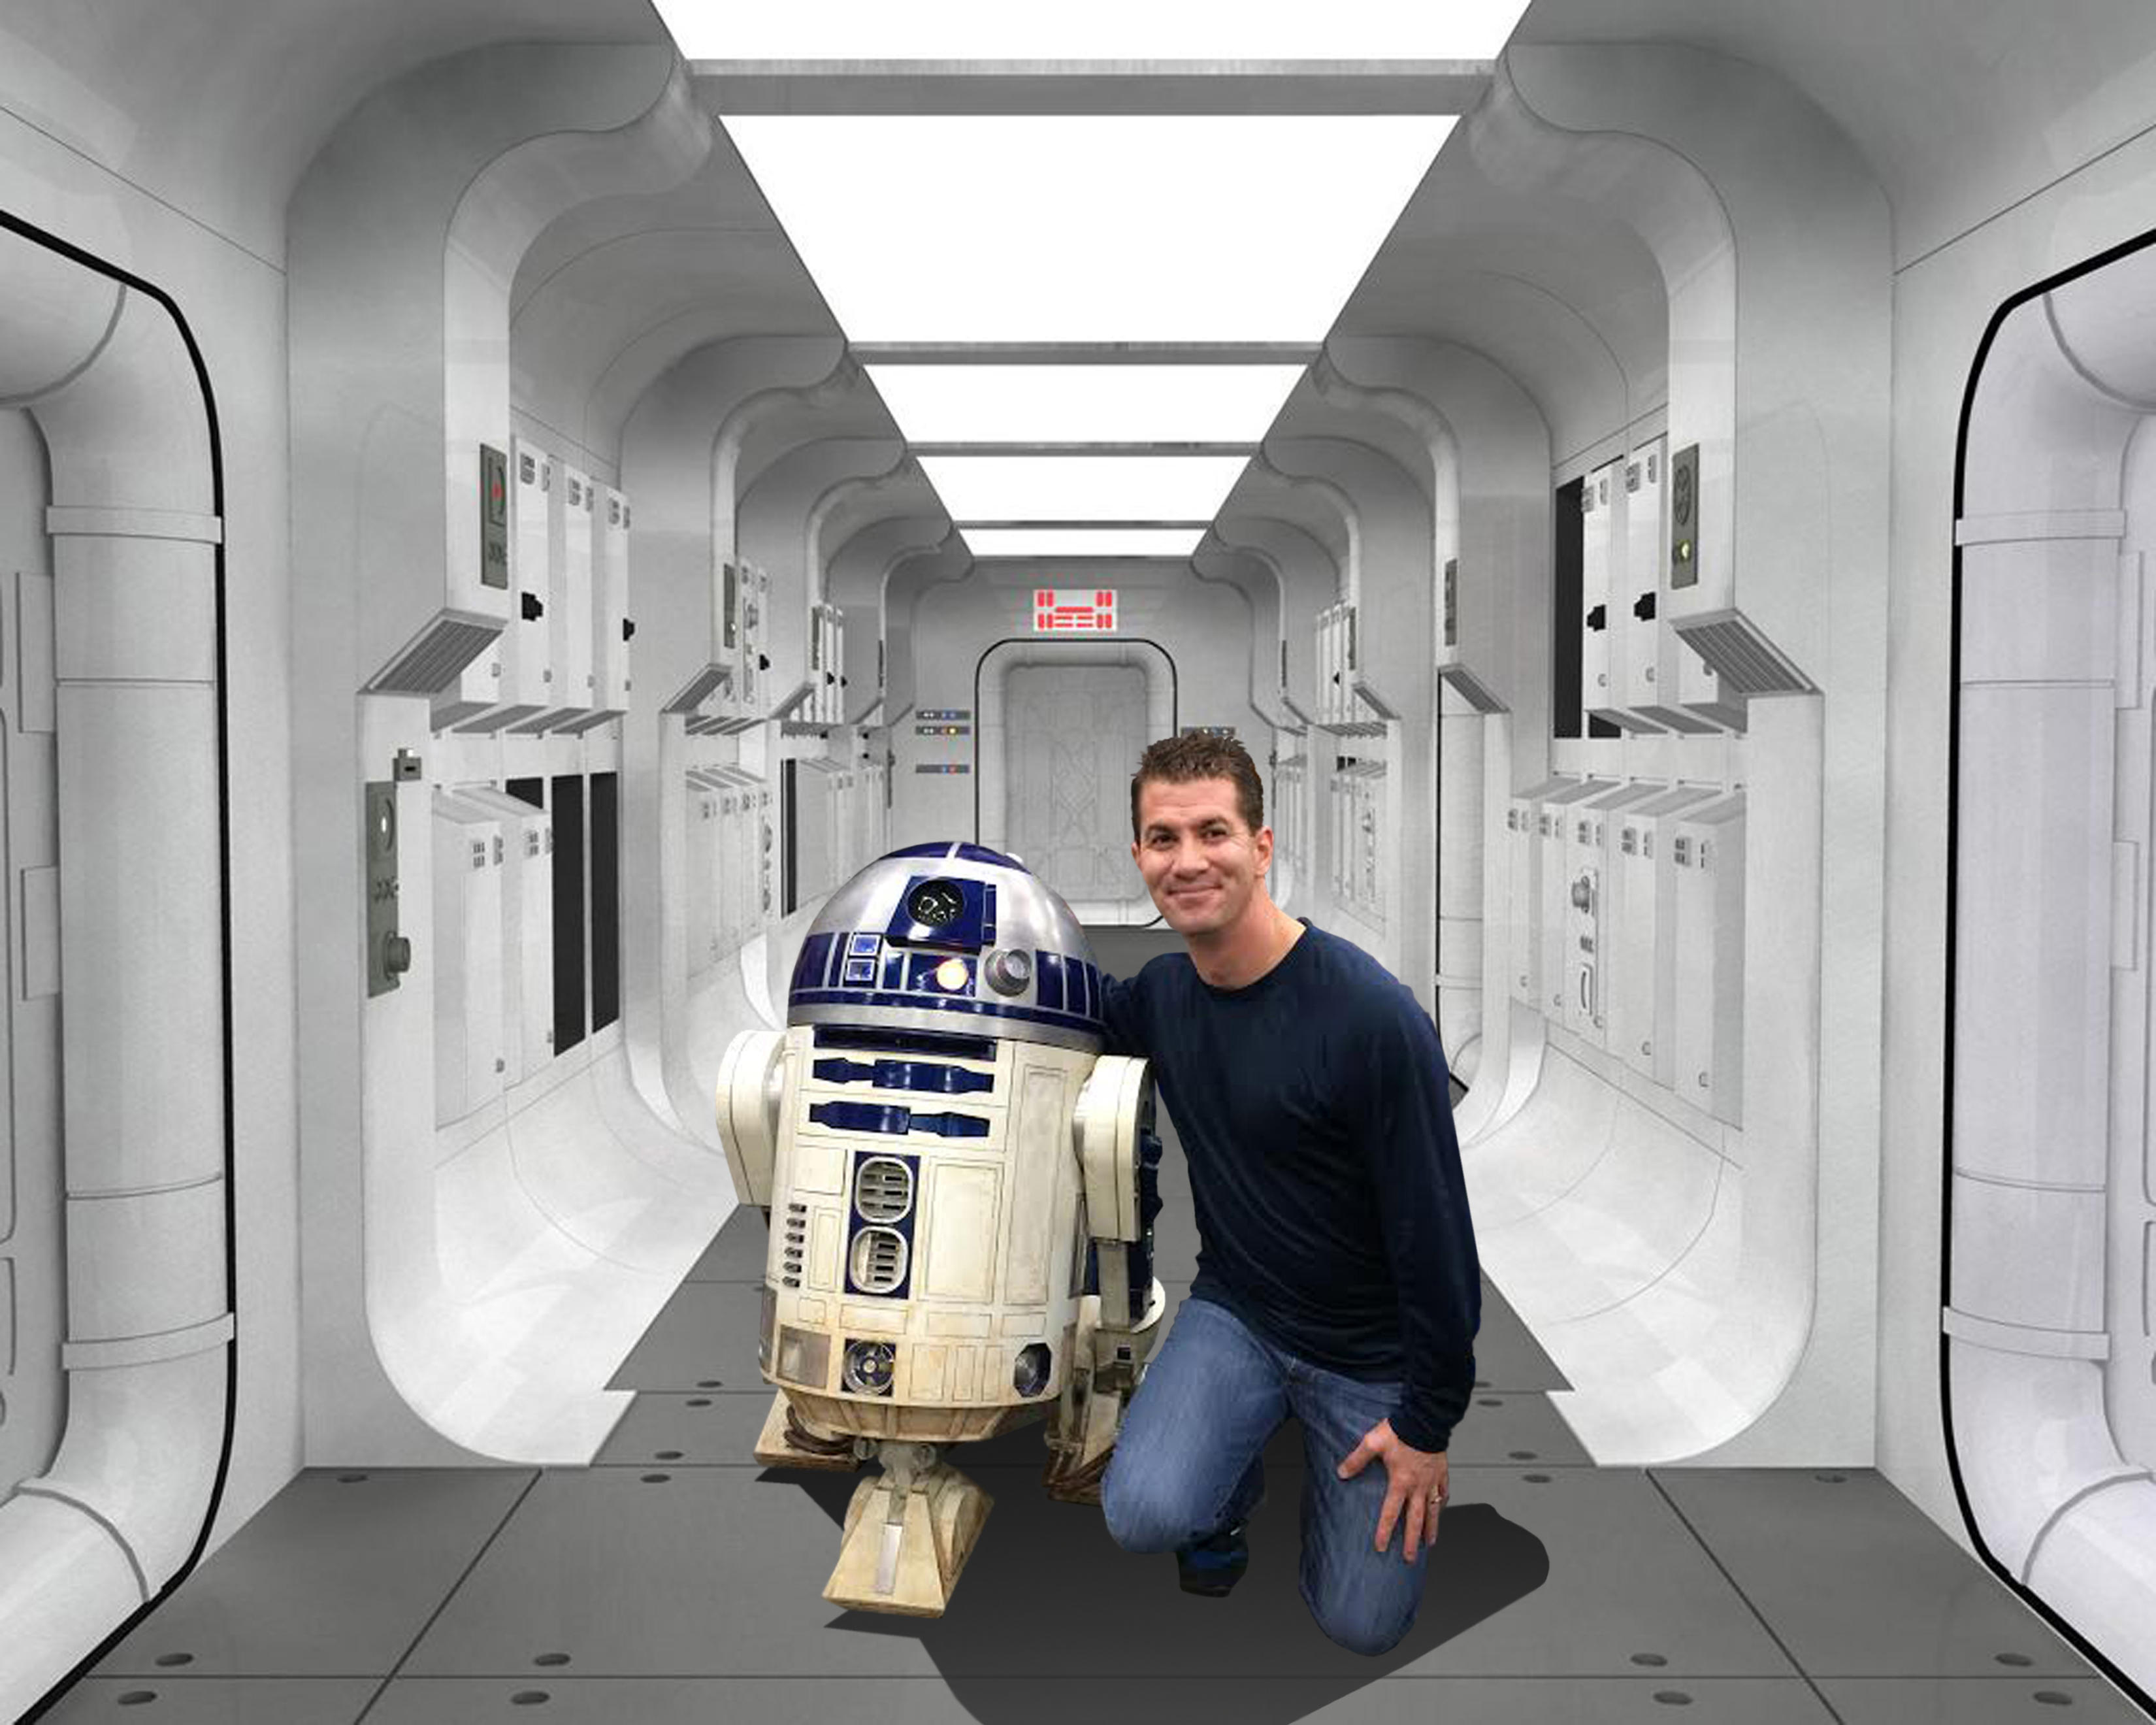 Andrew and R2 on the Tantive IV copy